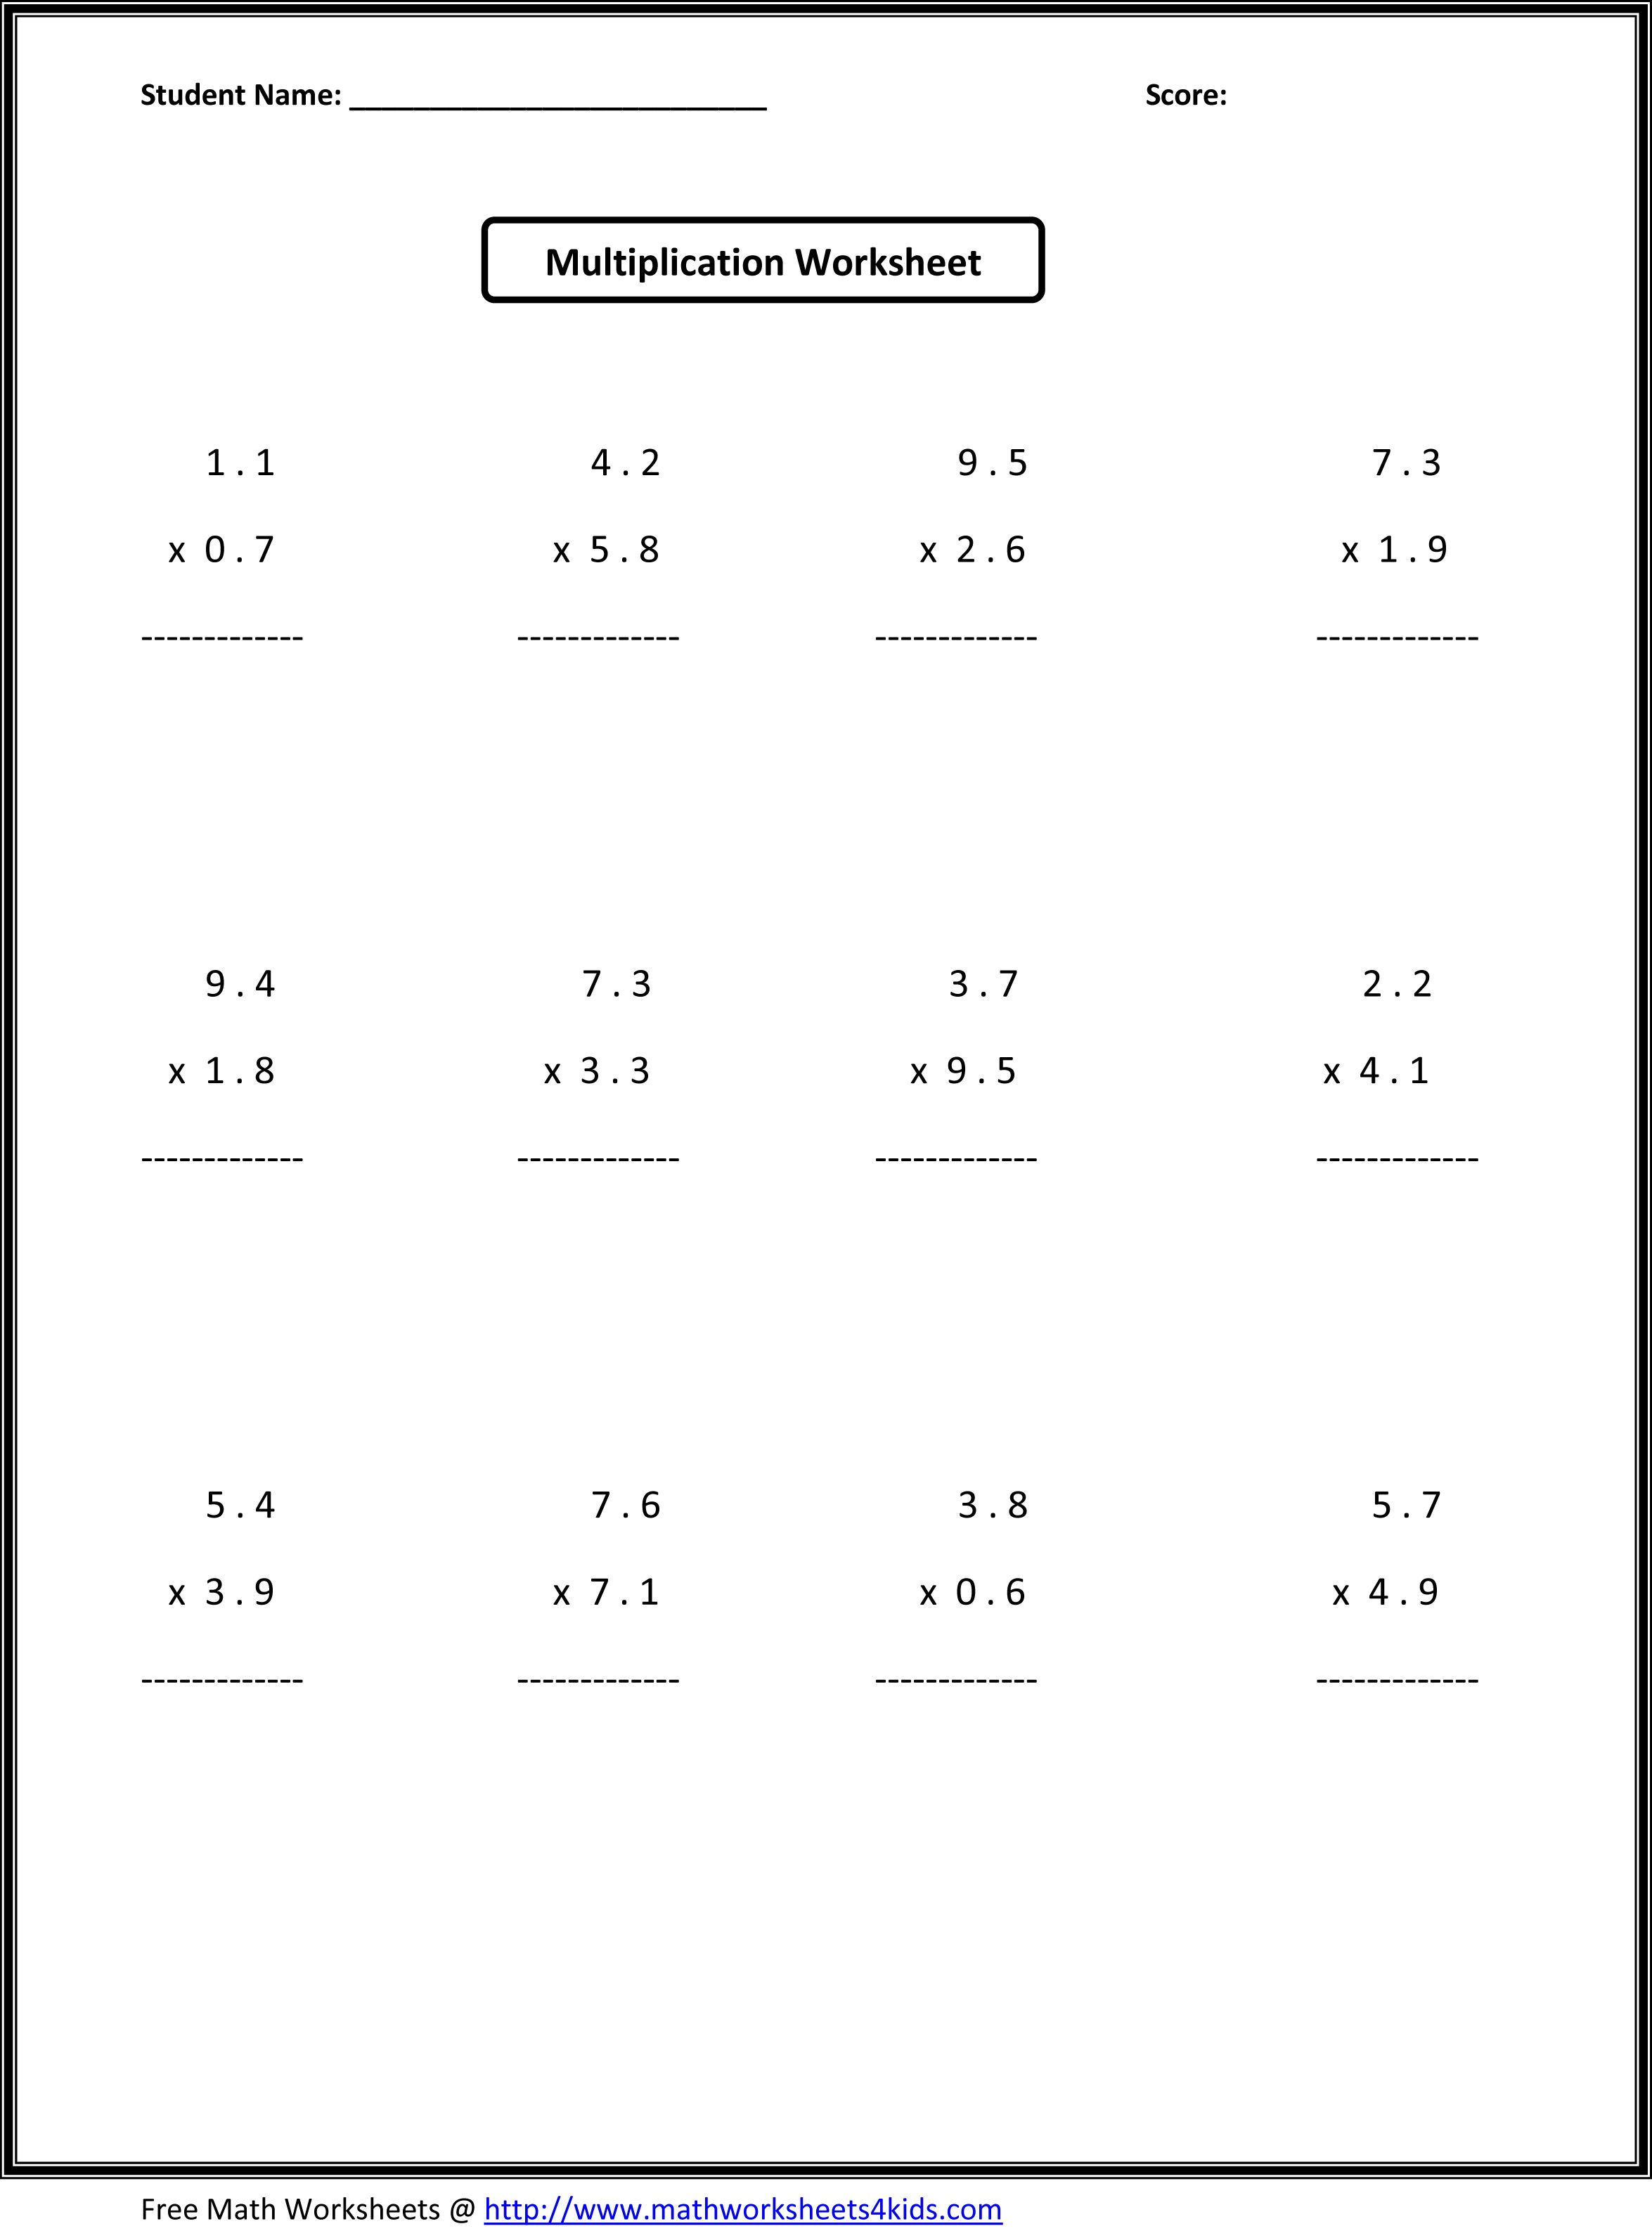 7th Grade Algebra Worksheets 7th Grade Math Worksheets – Math Worksheets for 7th Grade